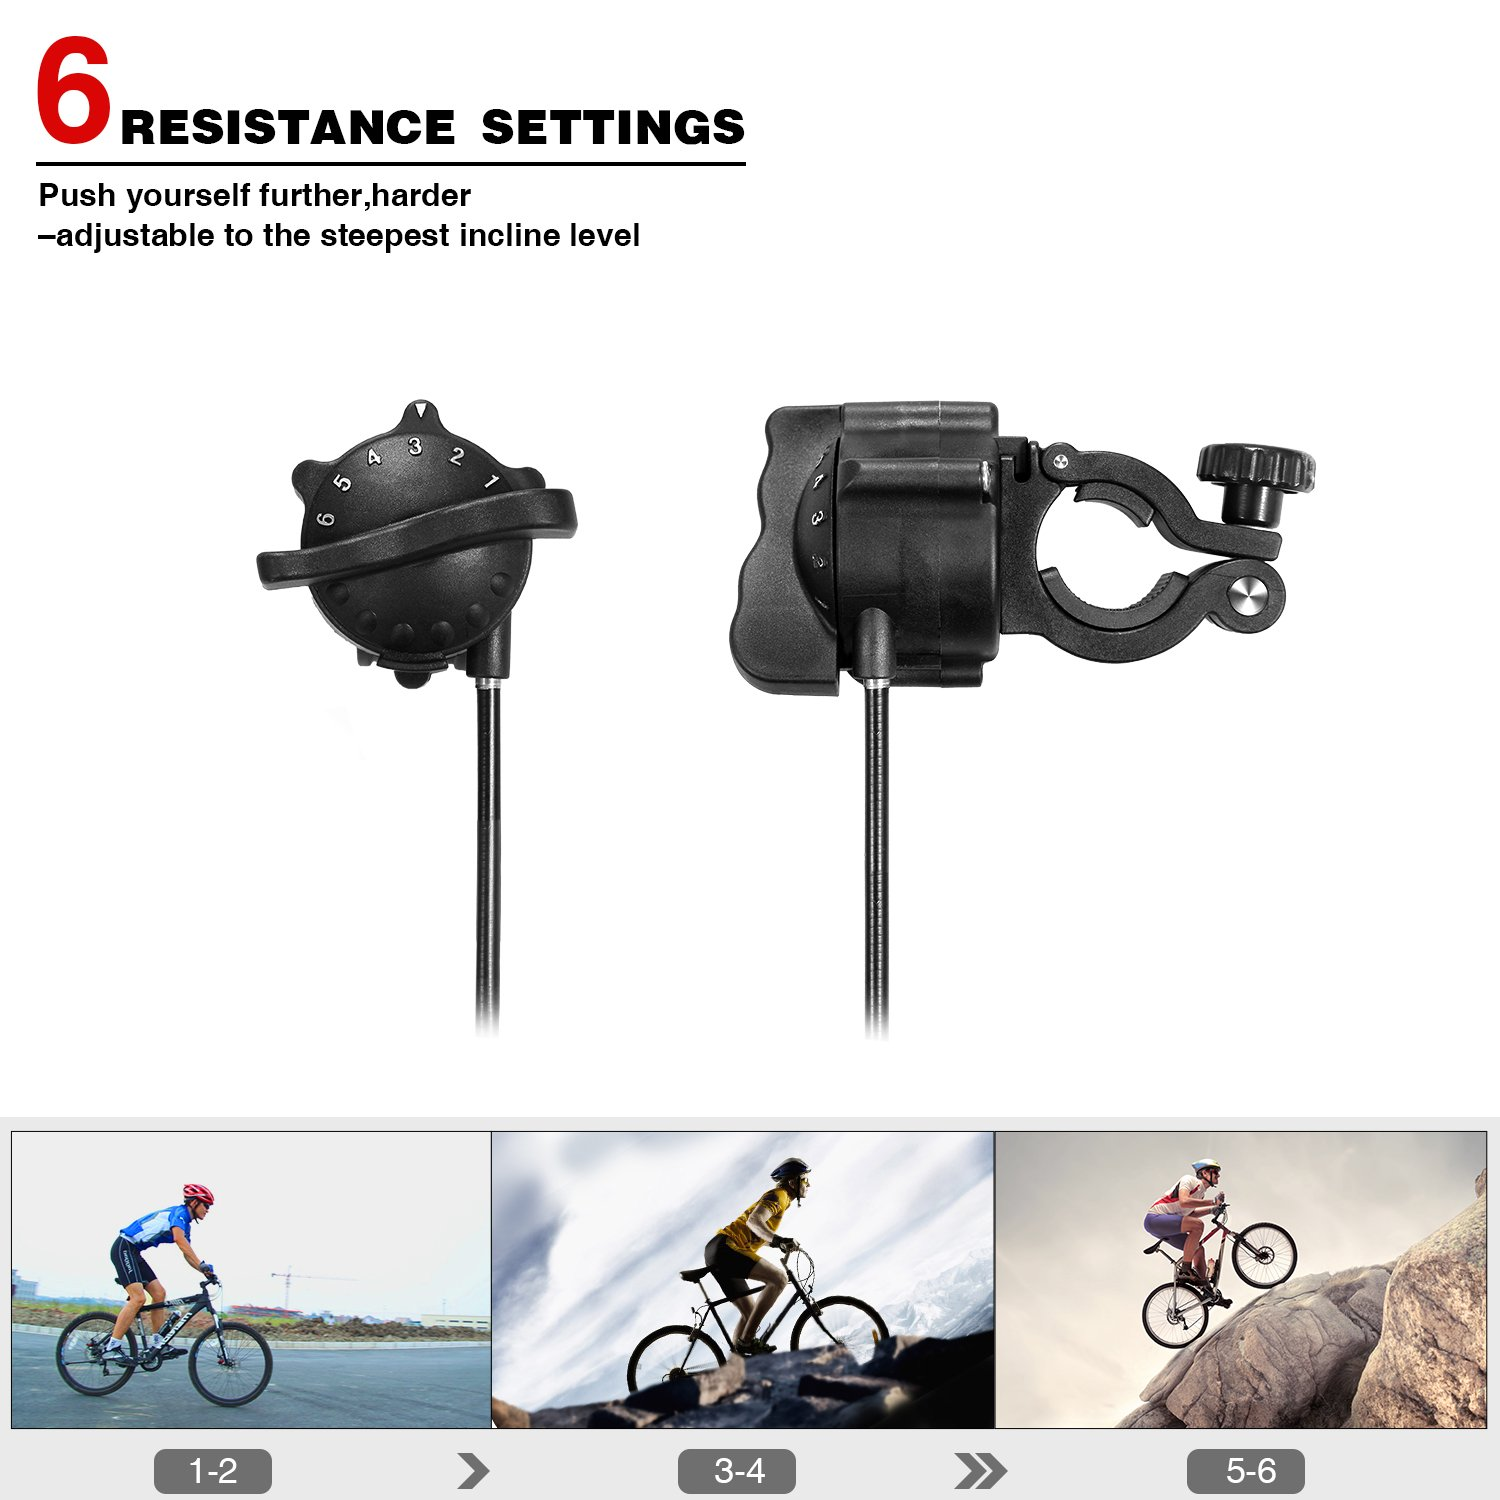 Sportneer Bike Trainer Stand Steel Bicycle Exercise Magnetic Stand with Noise Reduction Wheel, Black by Sportneer (Image #3)